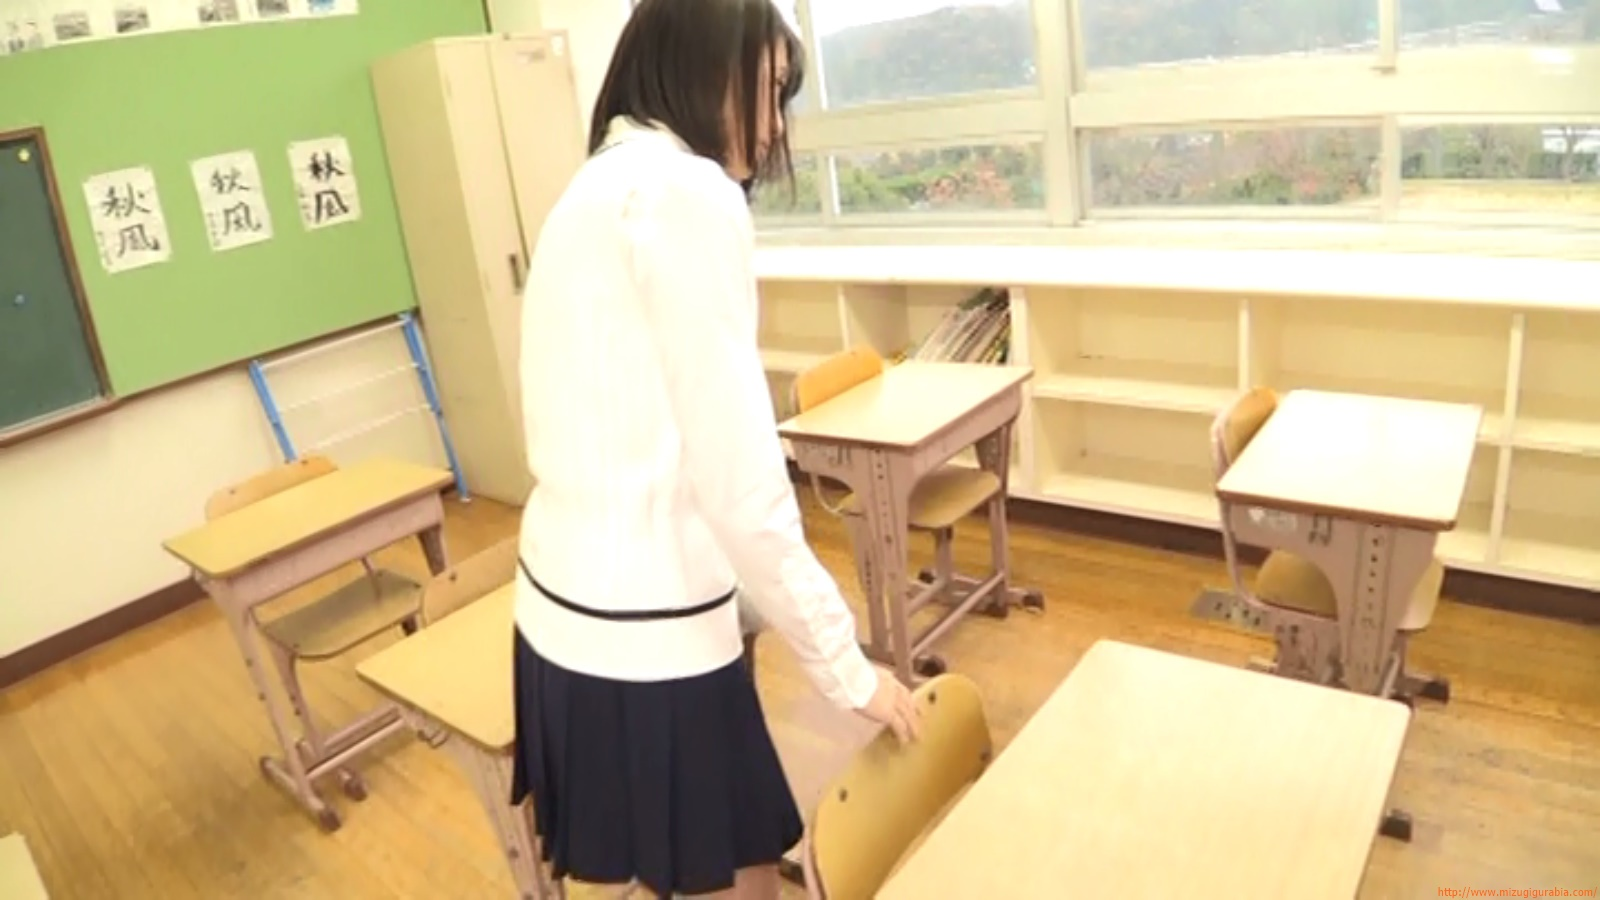 Two-person classroom039